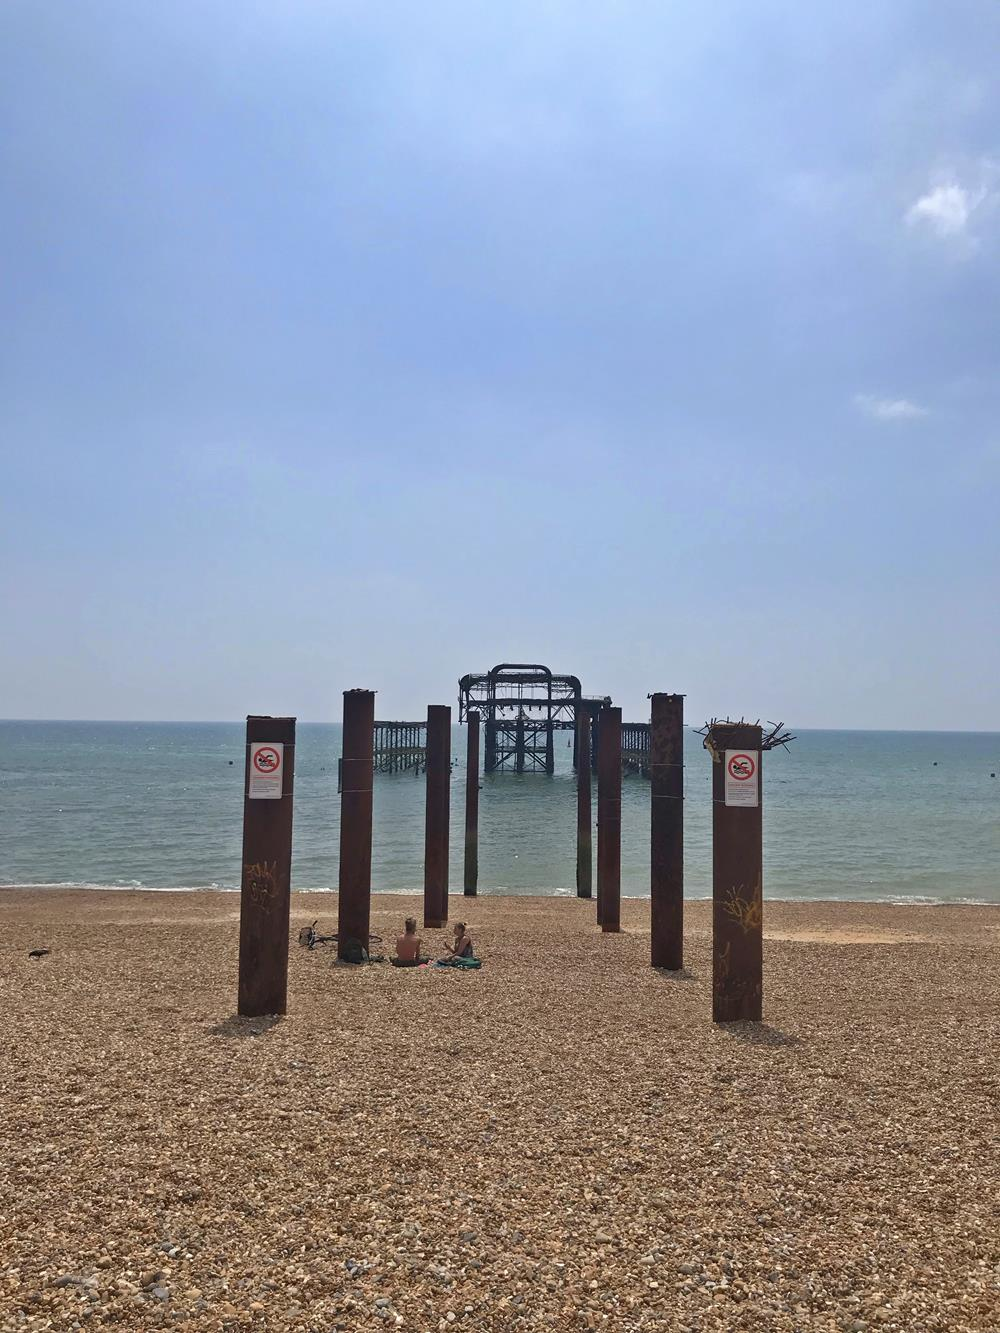 View of the West Pier nestled between steel walkway supports